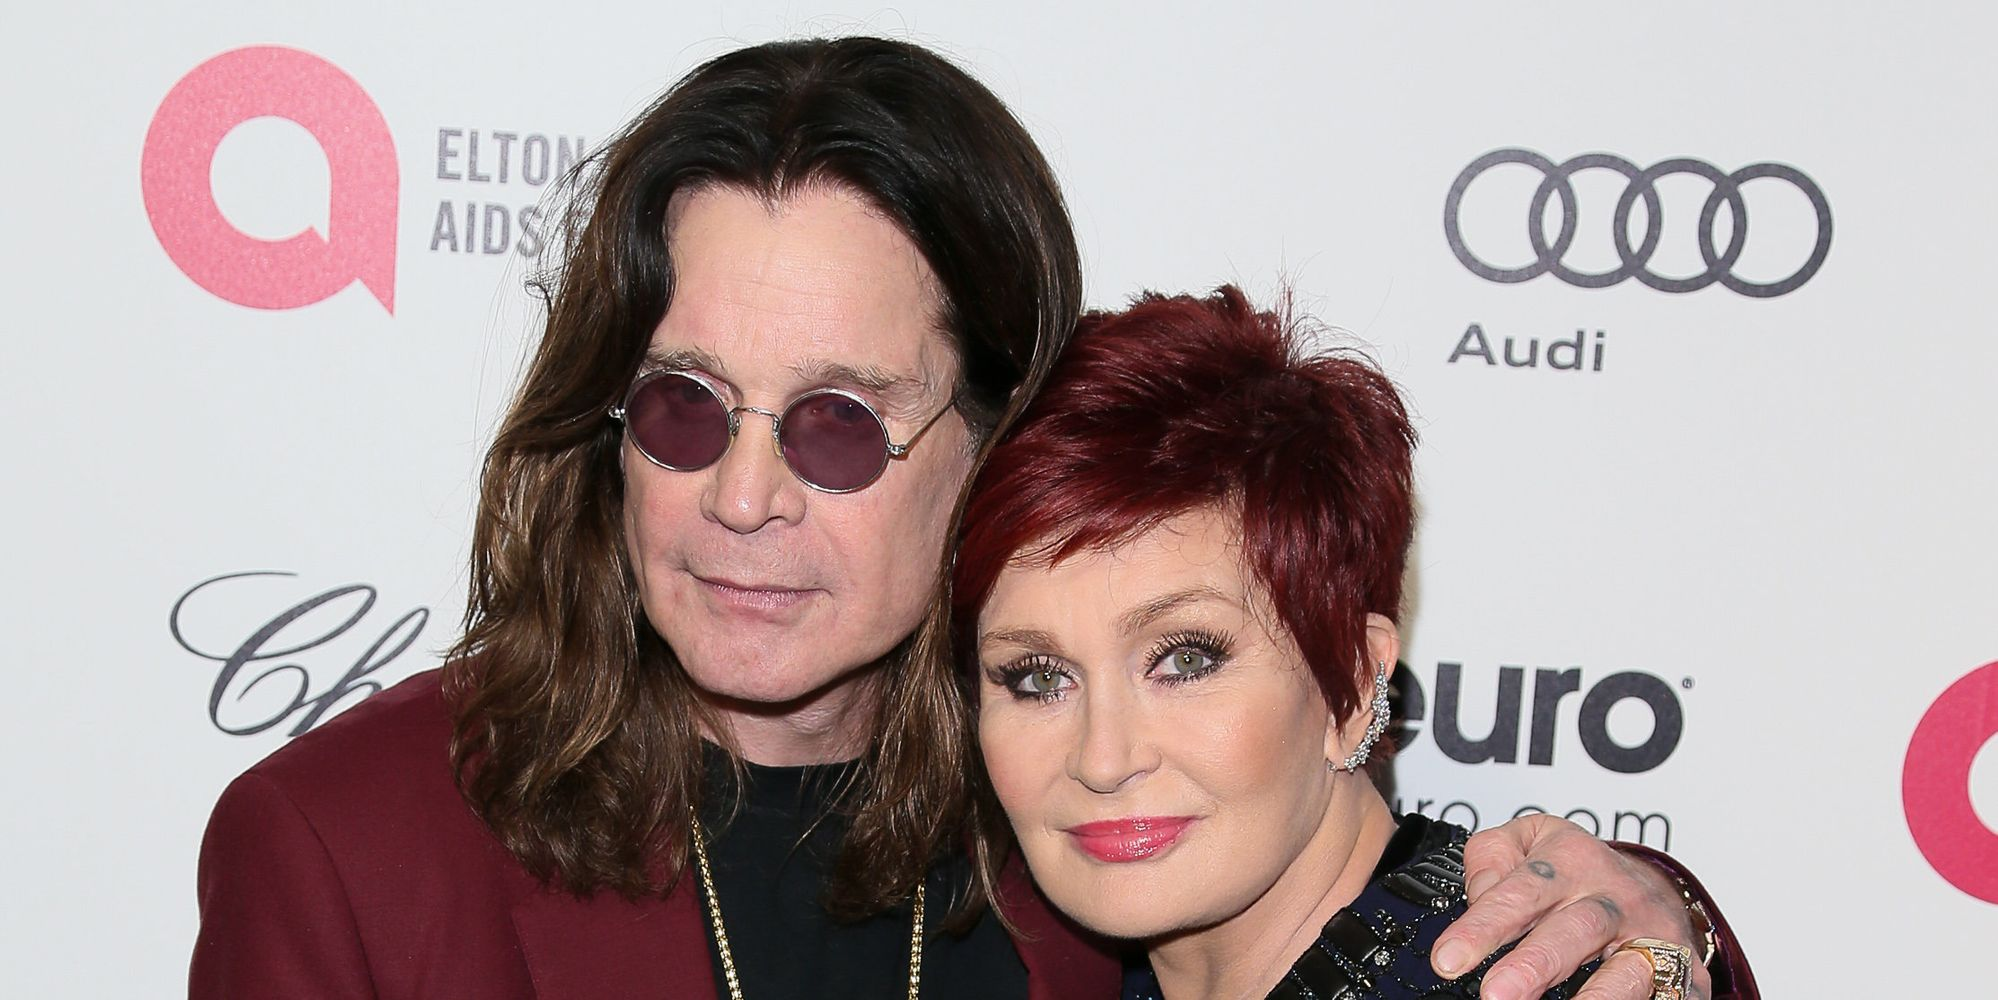 Ozzy Osbourne Says Separation From Sharon Was Just 'A Bump In The Road'